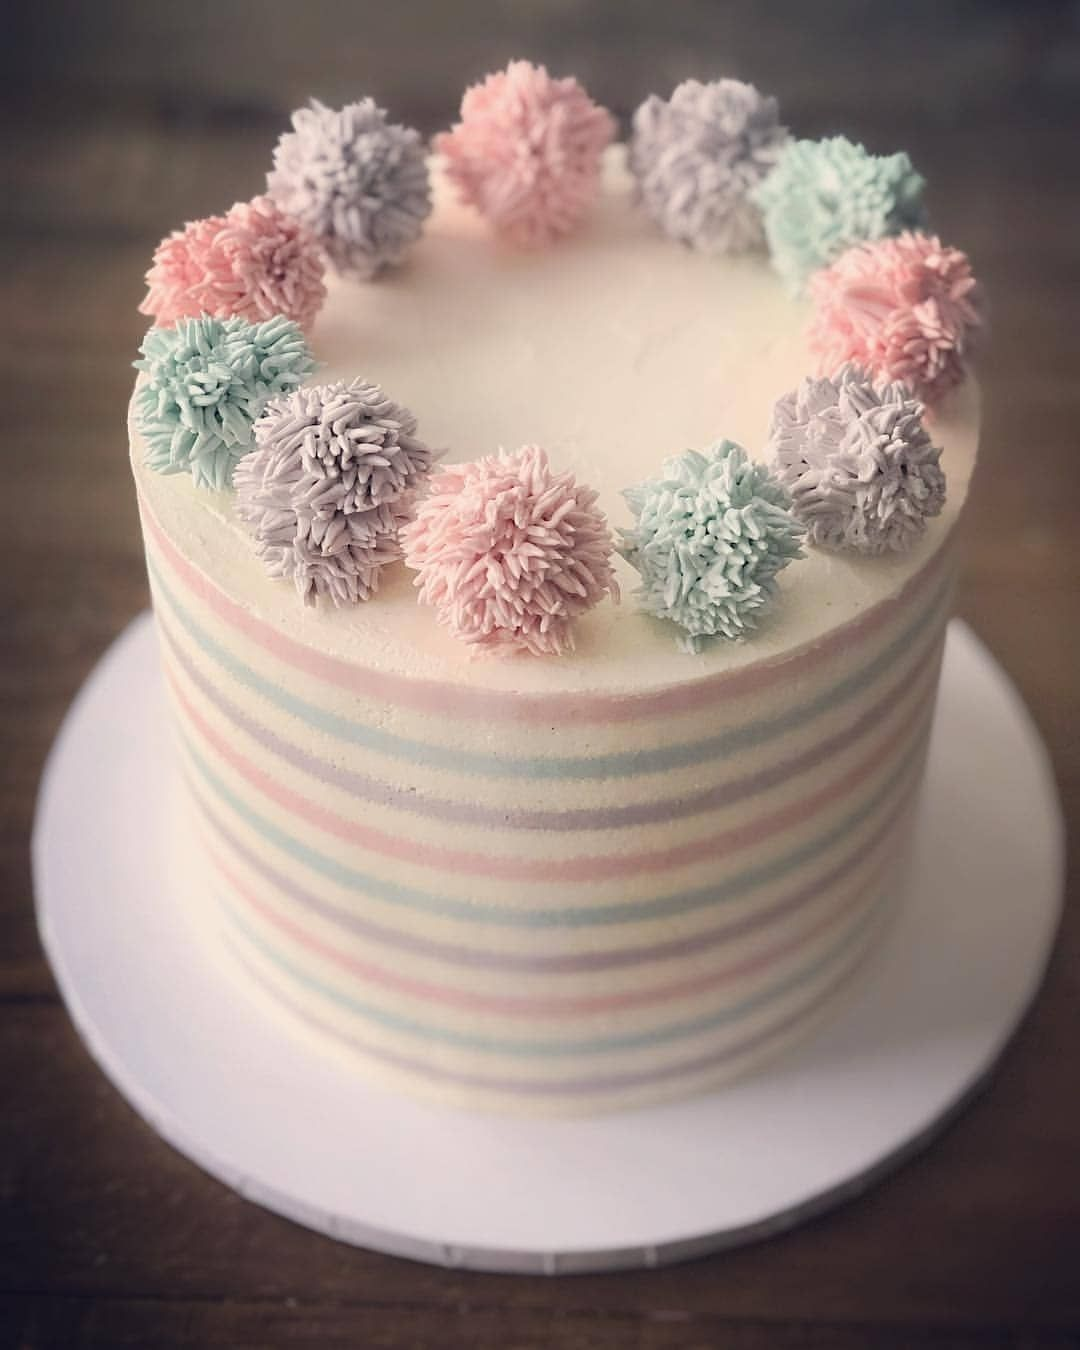 Daily Baking Ideas On Instagram Repost From Ohcakeswinnie